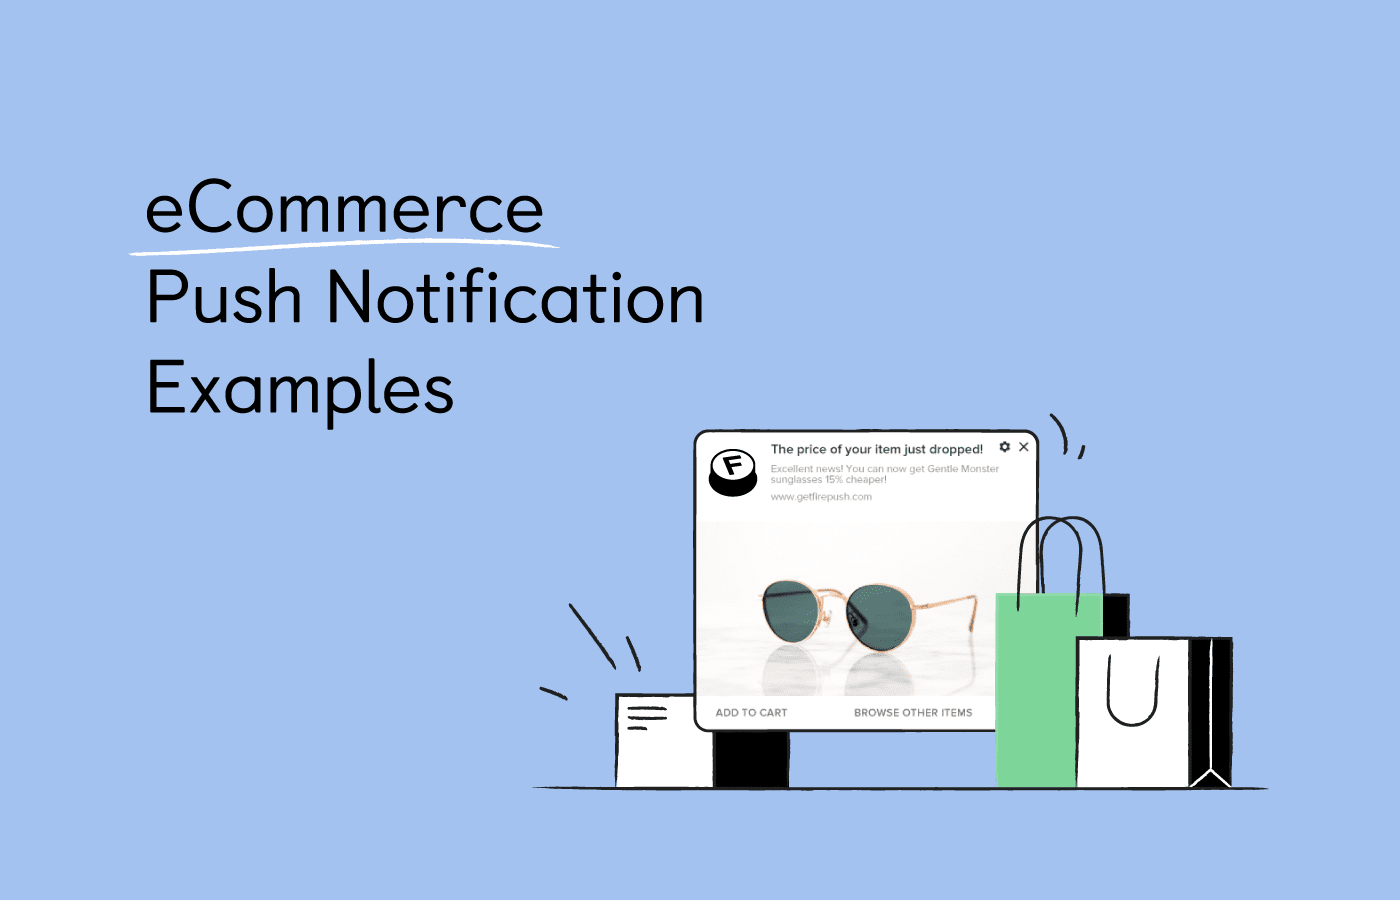 6 Examples of eCommerce Push Notifications to Engage Customers